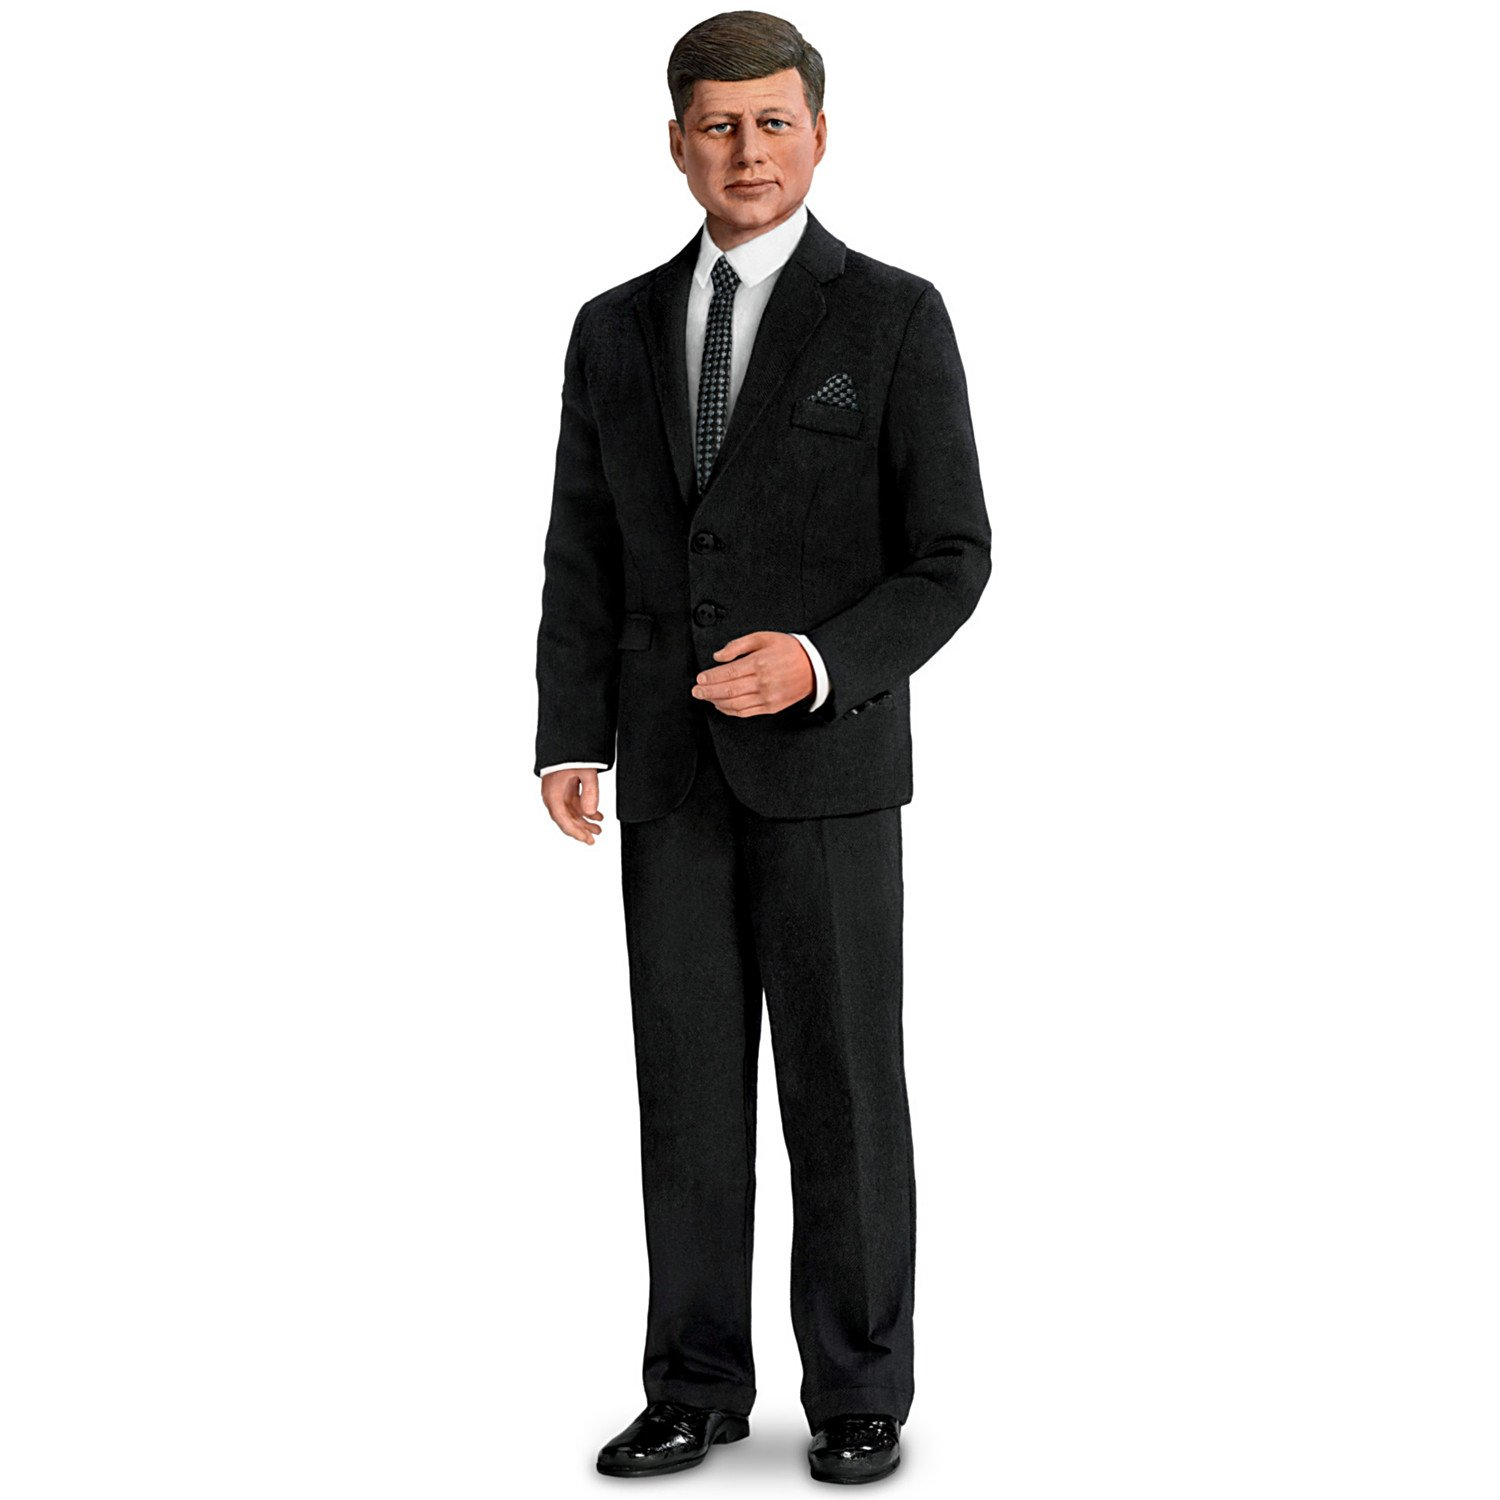 15'' President John F. Kennedy Poseable Talking Doll with Doll Stand by The Ashton-Drake Galleries